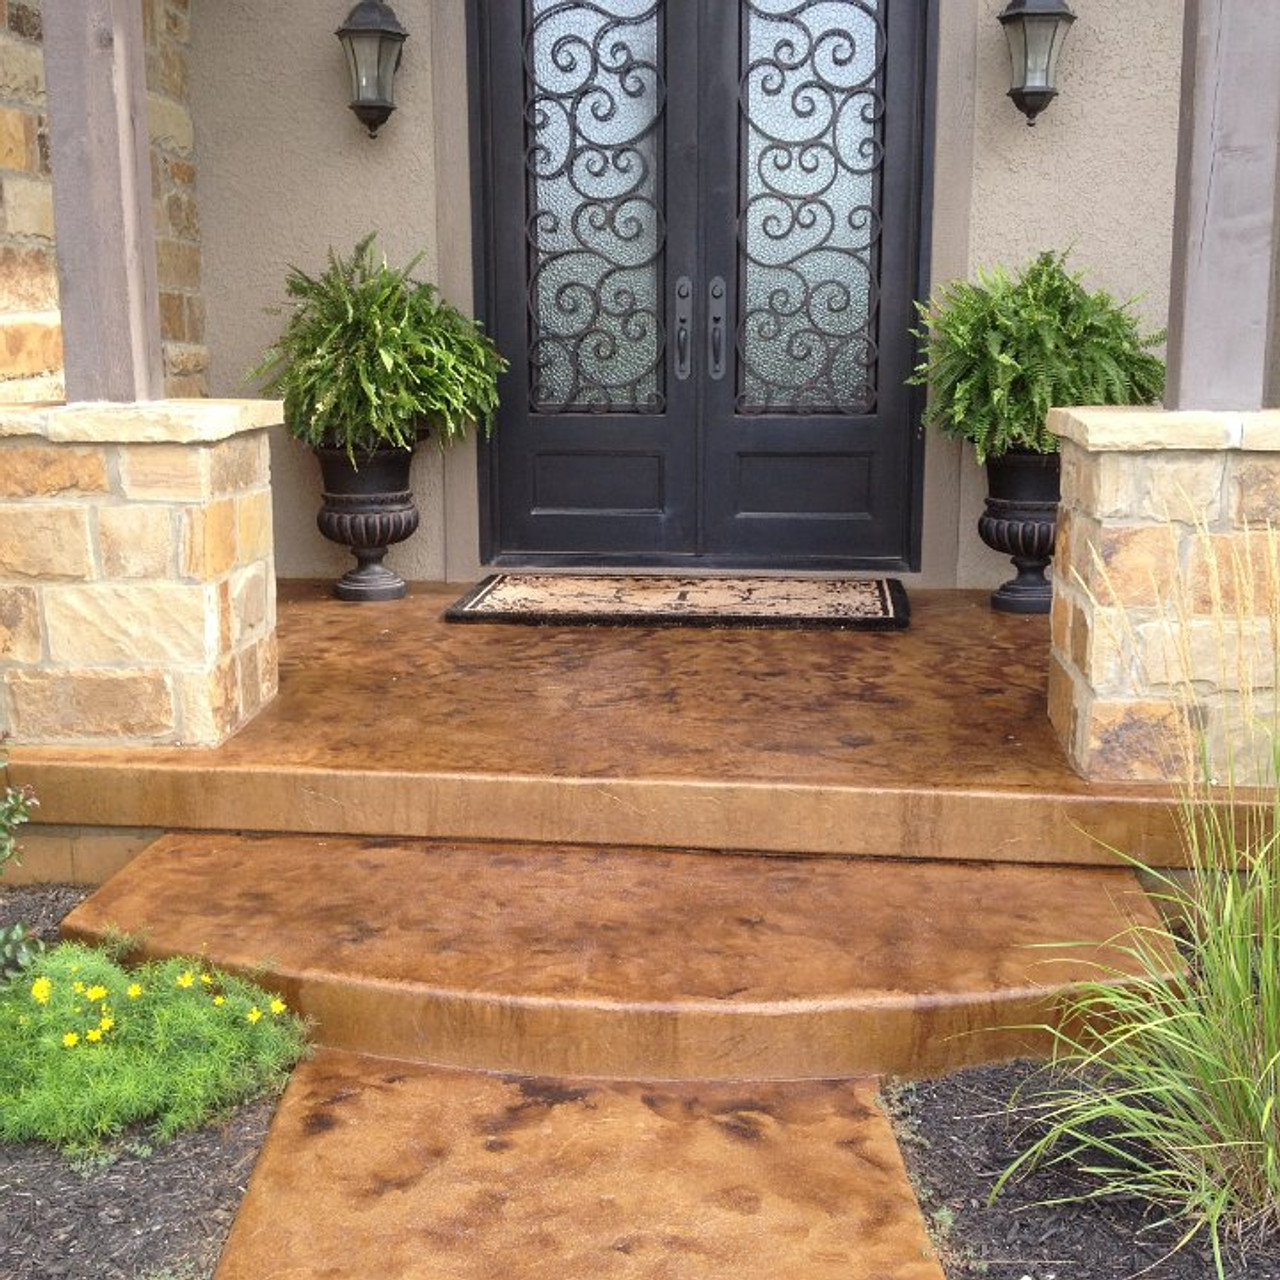 E15 Epoxy Stamped Concrete Sealer can be applied with anti skid to prevent a slipery surfaces